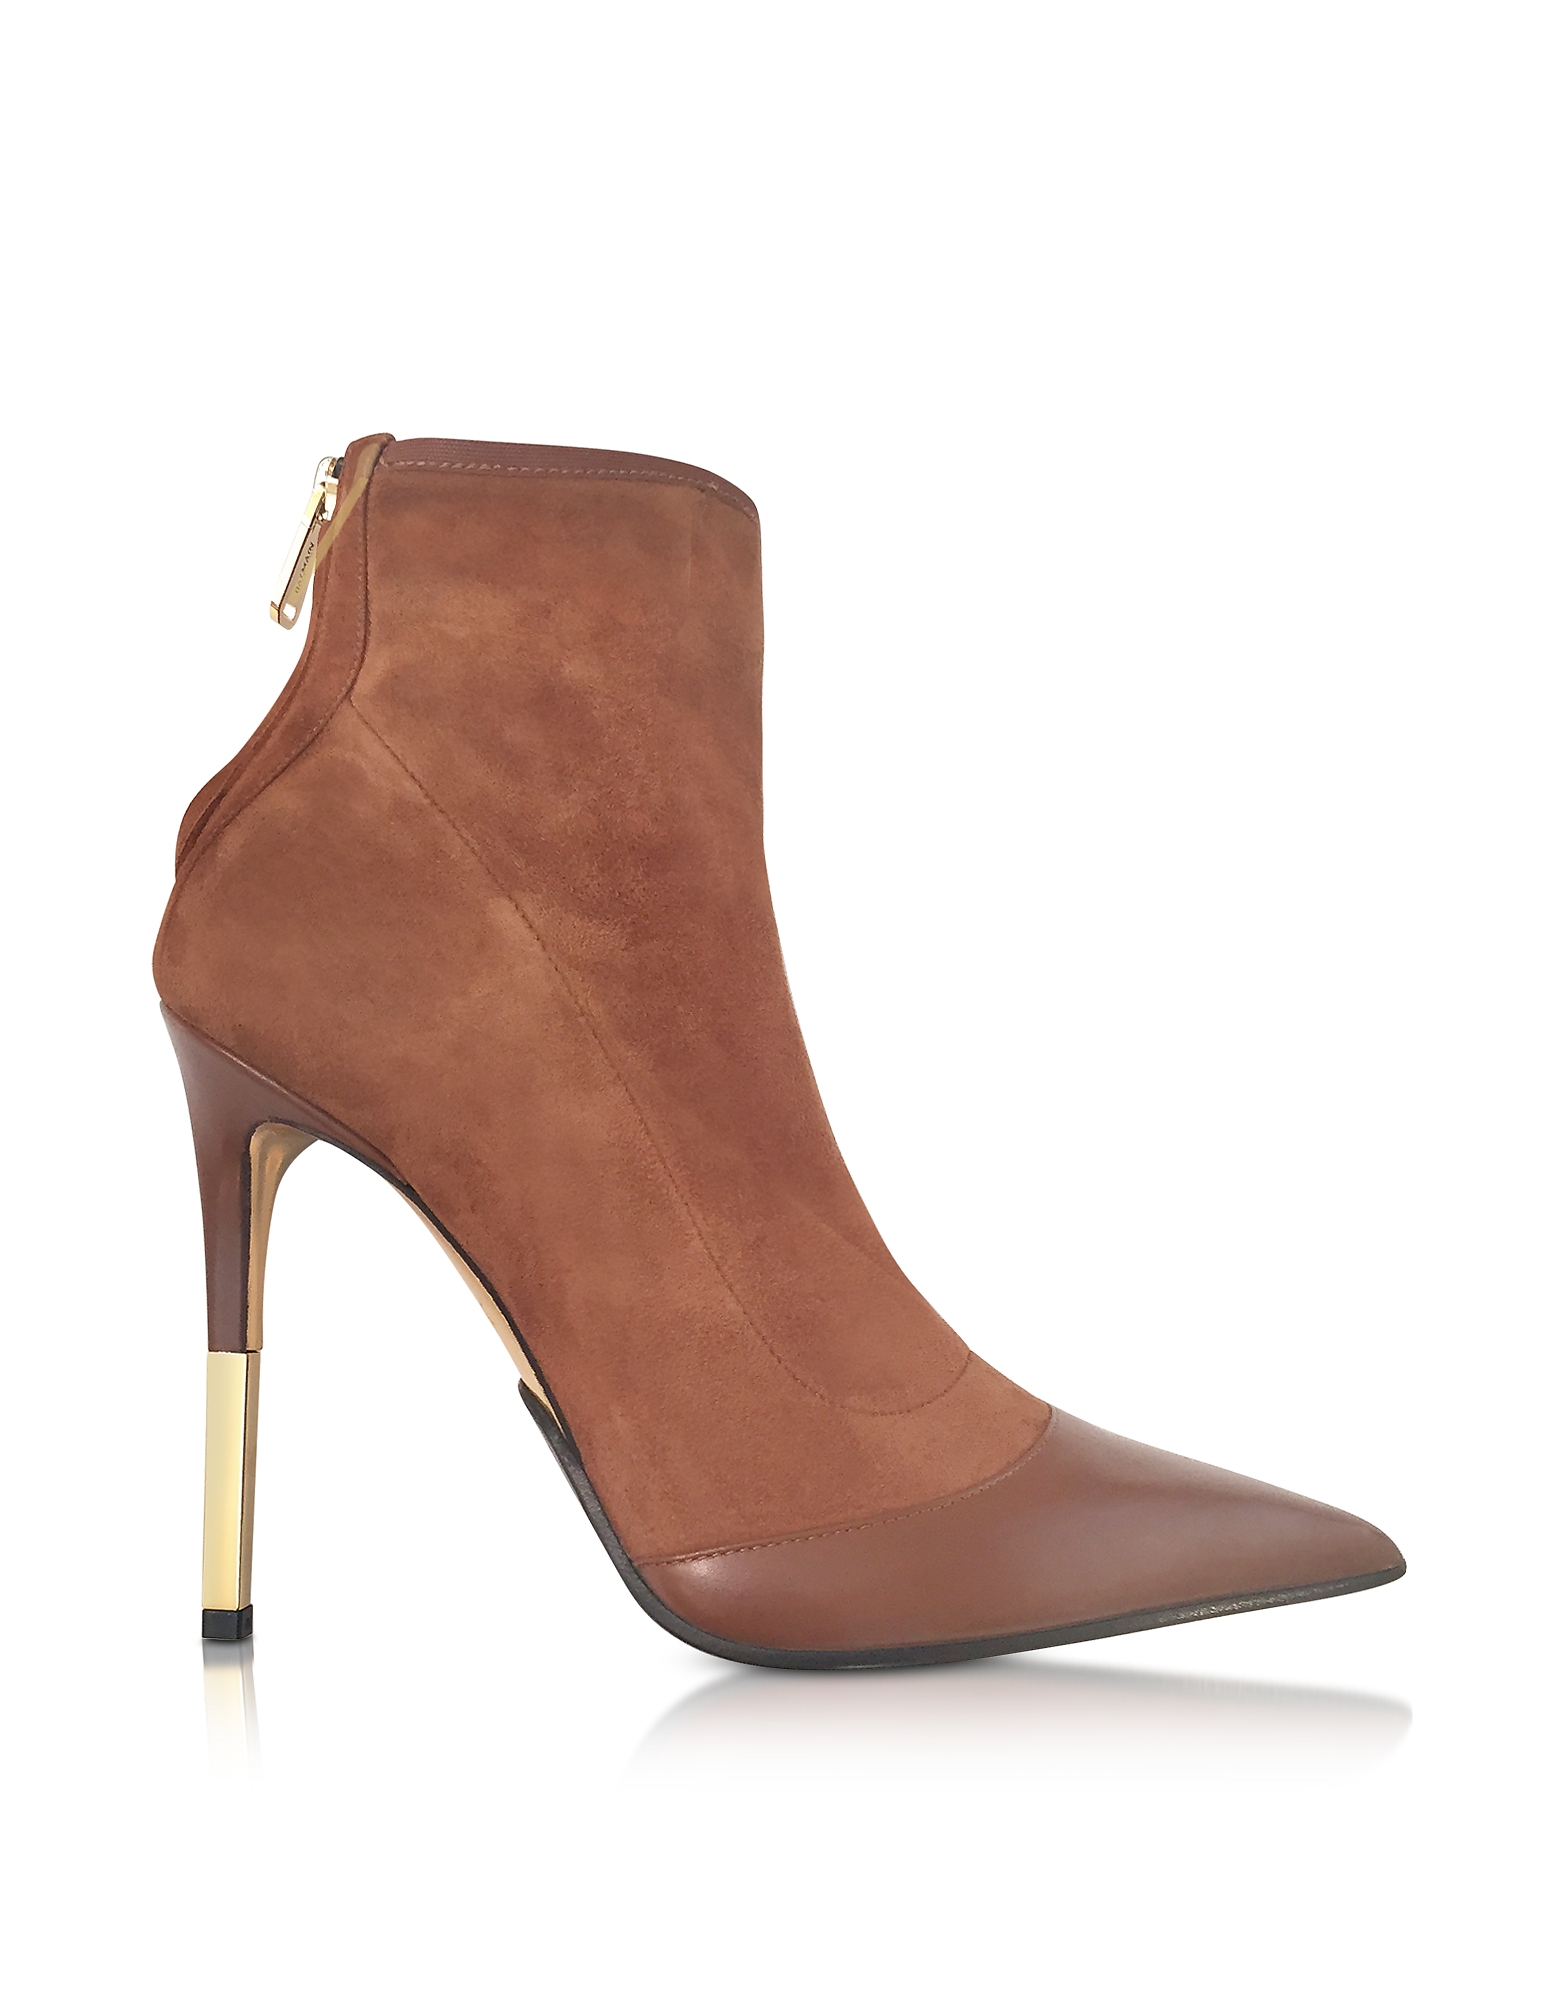 Balmain Shoes, Blair Noisette Suede and Leather High Heel Booties